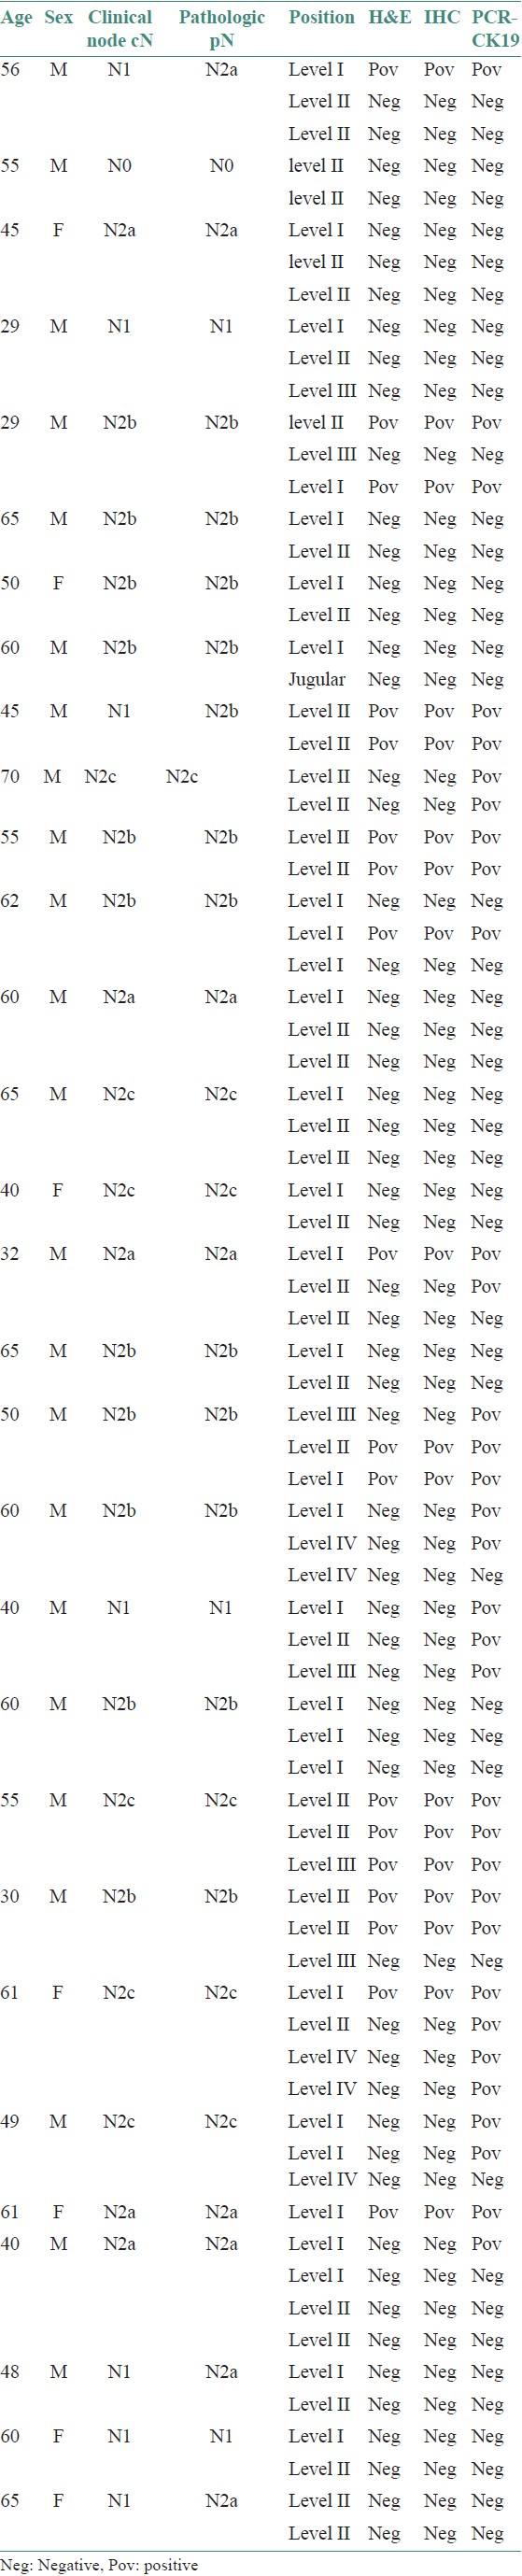 Table 3: Results of histopathological examination and CK14 mRNA real-time RT-PCR in the various cervical